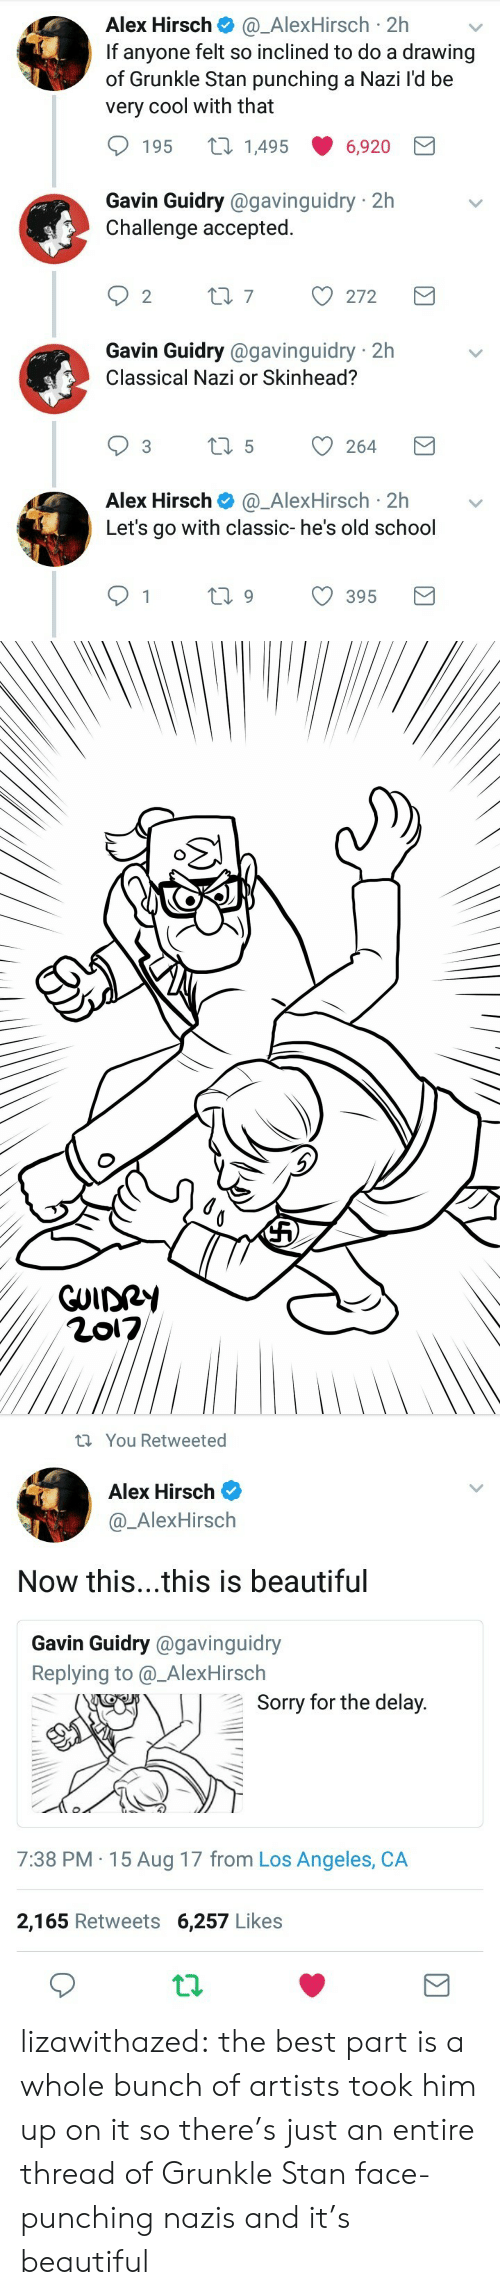 Alex Hirsch: Alex Hirsch@_AlexHirsch 2h  If anyone felt so inclined to do a drawing  of Grunkle Stan punching a Nazi l'd be  very cool with that  195 t 14956,920  Gavin Guidry @gavinguidry 2h  Challenge accepted.  Gavin Guidry @gavinguidry 2h  Classical Nazi or Skinhead?  Alex Hirsch@_AlexHirsch 2hv  Let's go with classic- he's old school  1  ti9 395   You Retweeted  Alex Hirsch  @_AlexHirsch  Now this...this is beautiful  Gavin Guidry @gavinguidry  Replying to @_AlexHirsch  Sorry for the delav  7:38 PM 15 Aug 17 from Los Angeles, CA  2,165 Retweets 6,257 Likes lizawithazed: the best part is a whole bunch of artists took him up on it so there's just an entire thread of Grunkle Stan face-punching nazis and it's beautiful